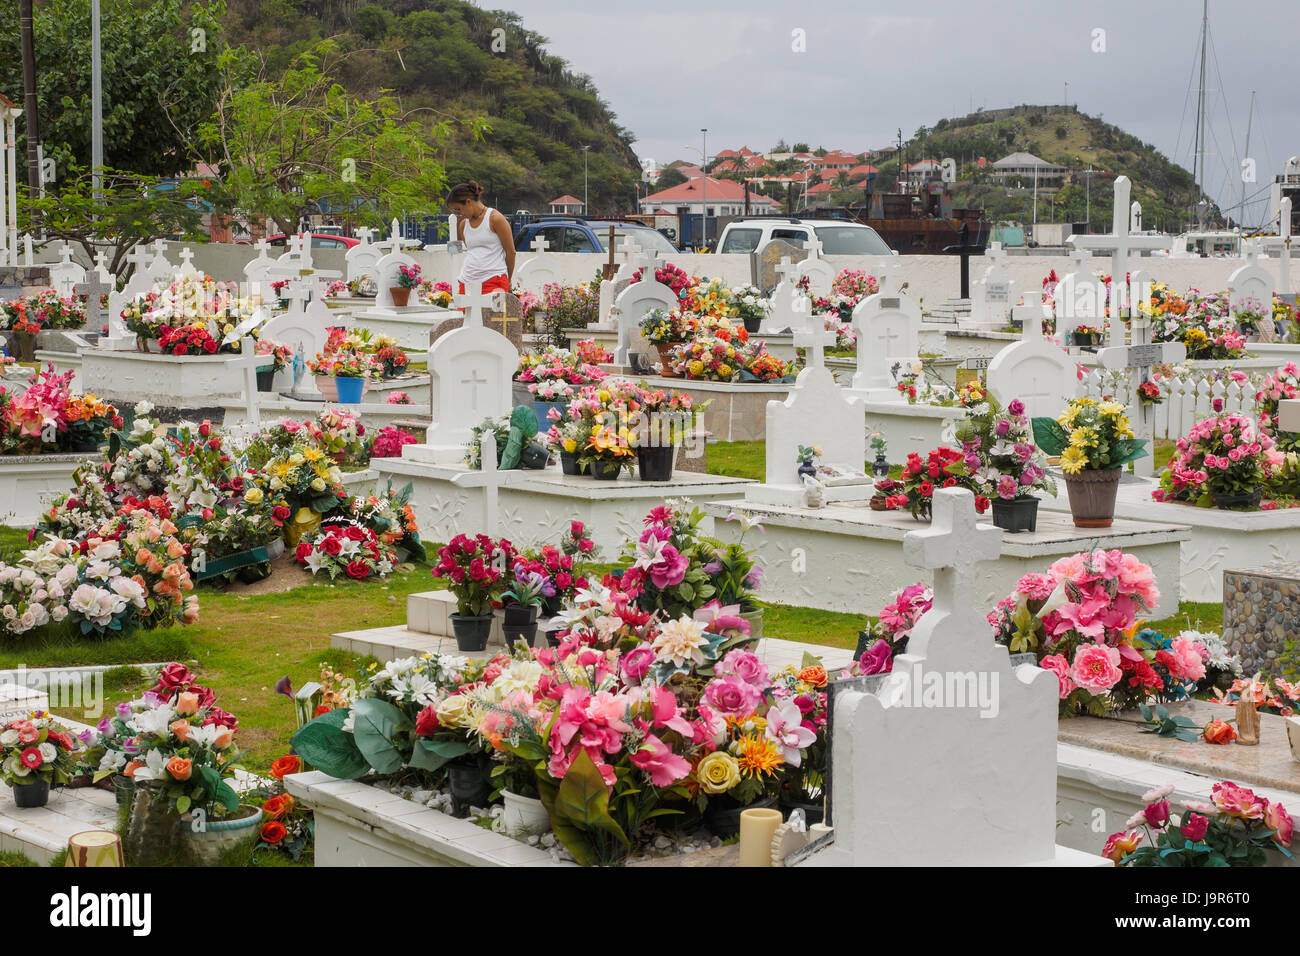 Flowers On Graves Stock Photos Flowers On Graves Stock Images Alamy